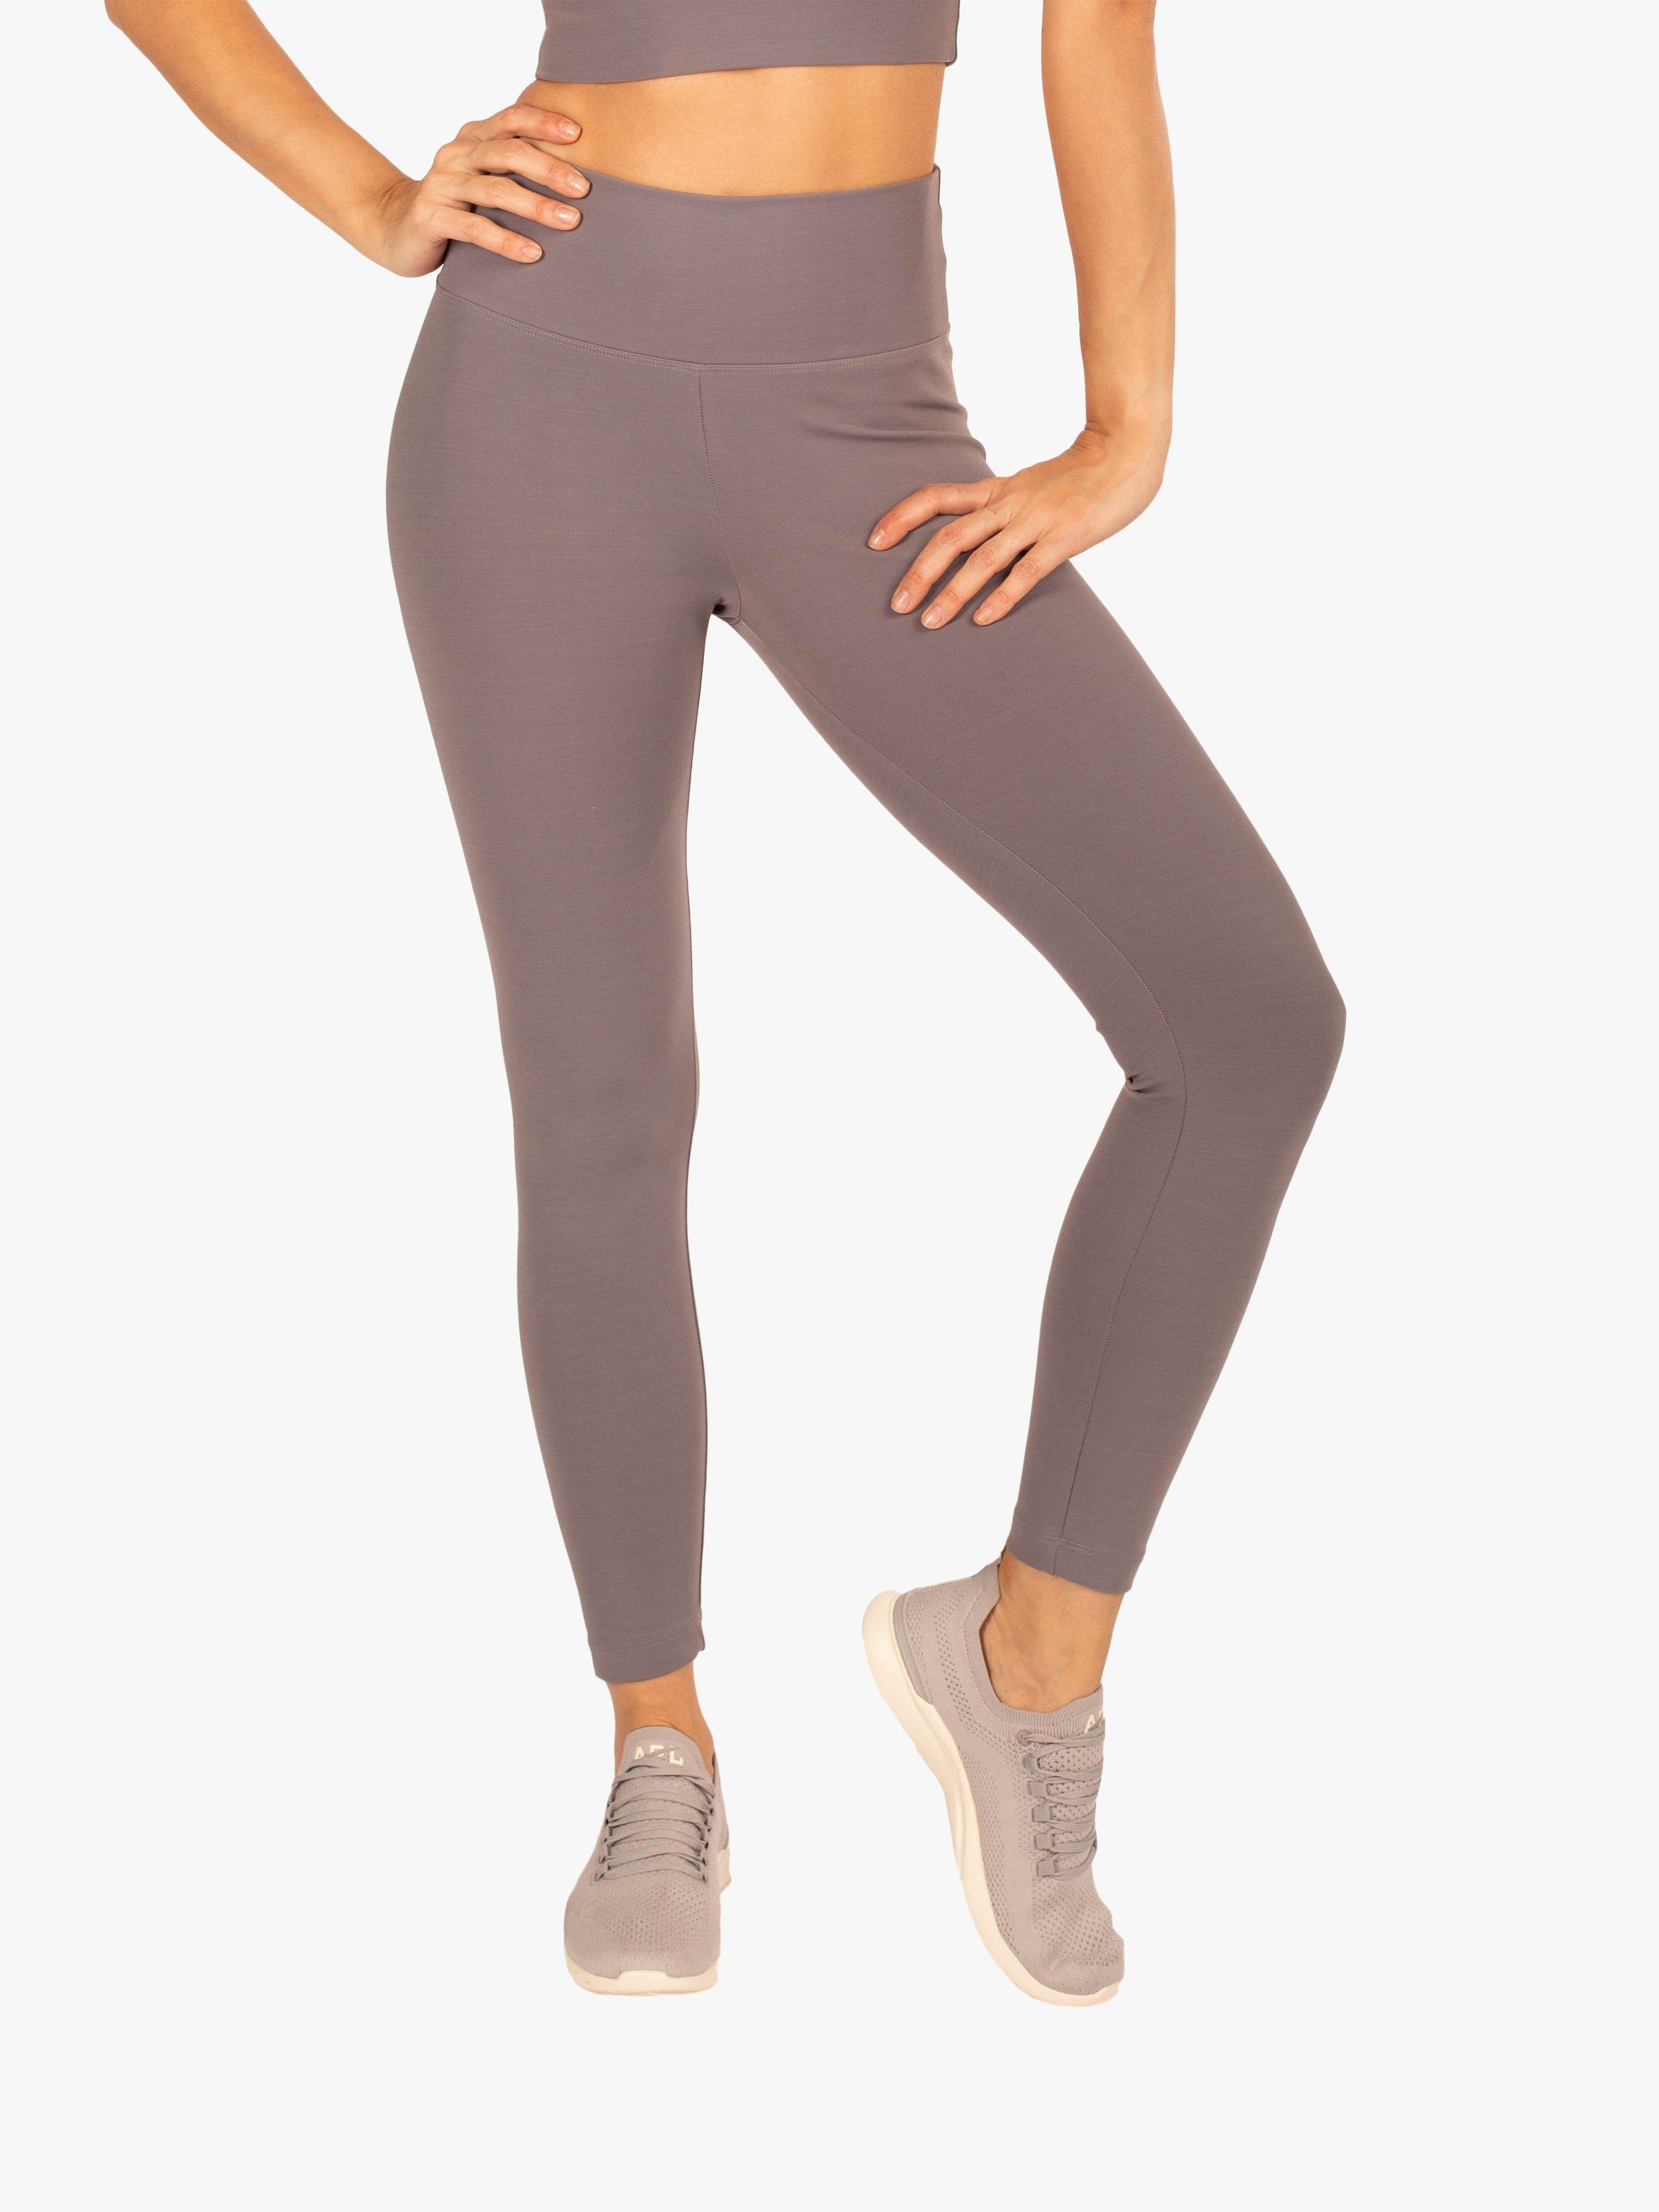 Exceed High Rise Blackout Legging - Volcanic Glass